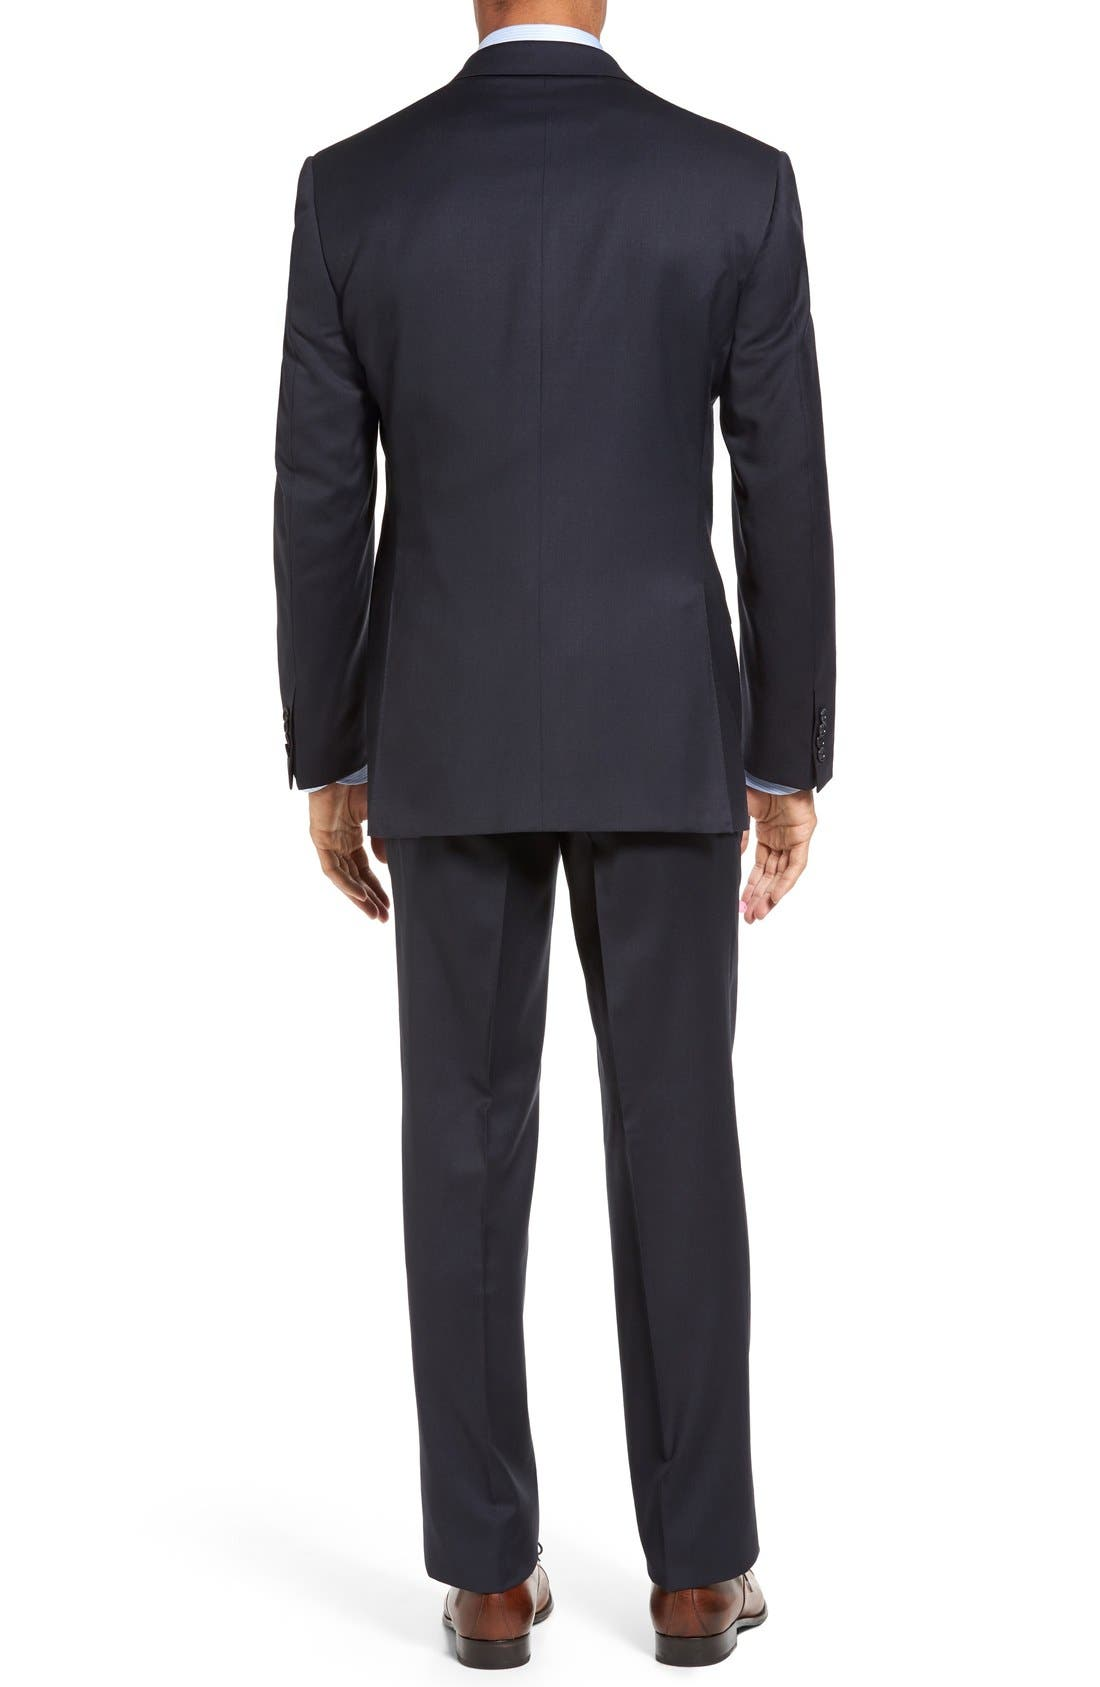 CANALI, Classic Fit Solid Wool Suit, Alternate thumbnail 2, color, NAVY